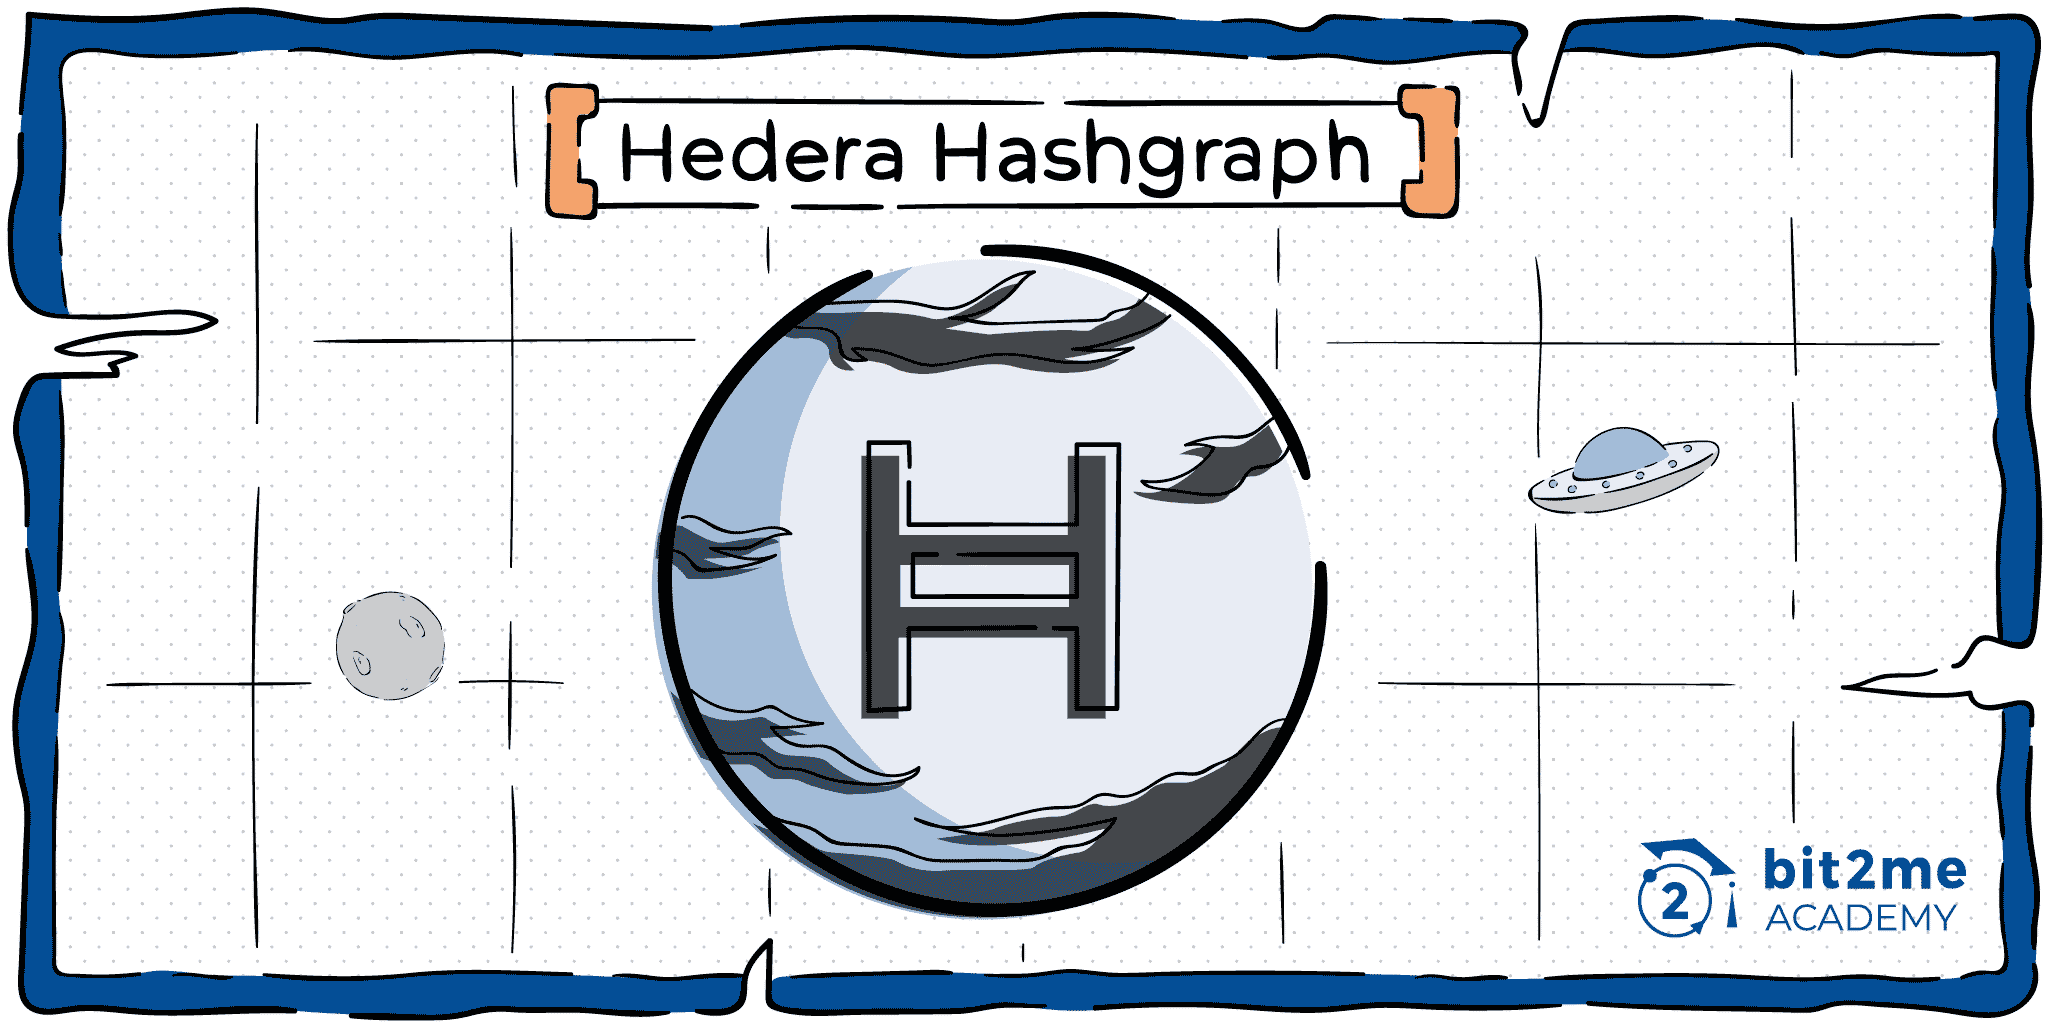 What is hedera hashgraph HBAR